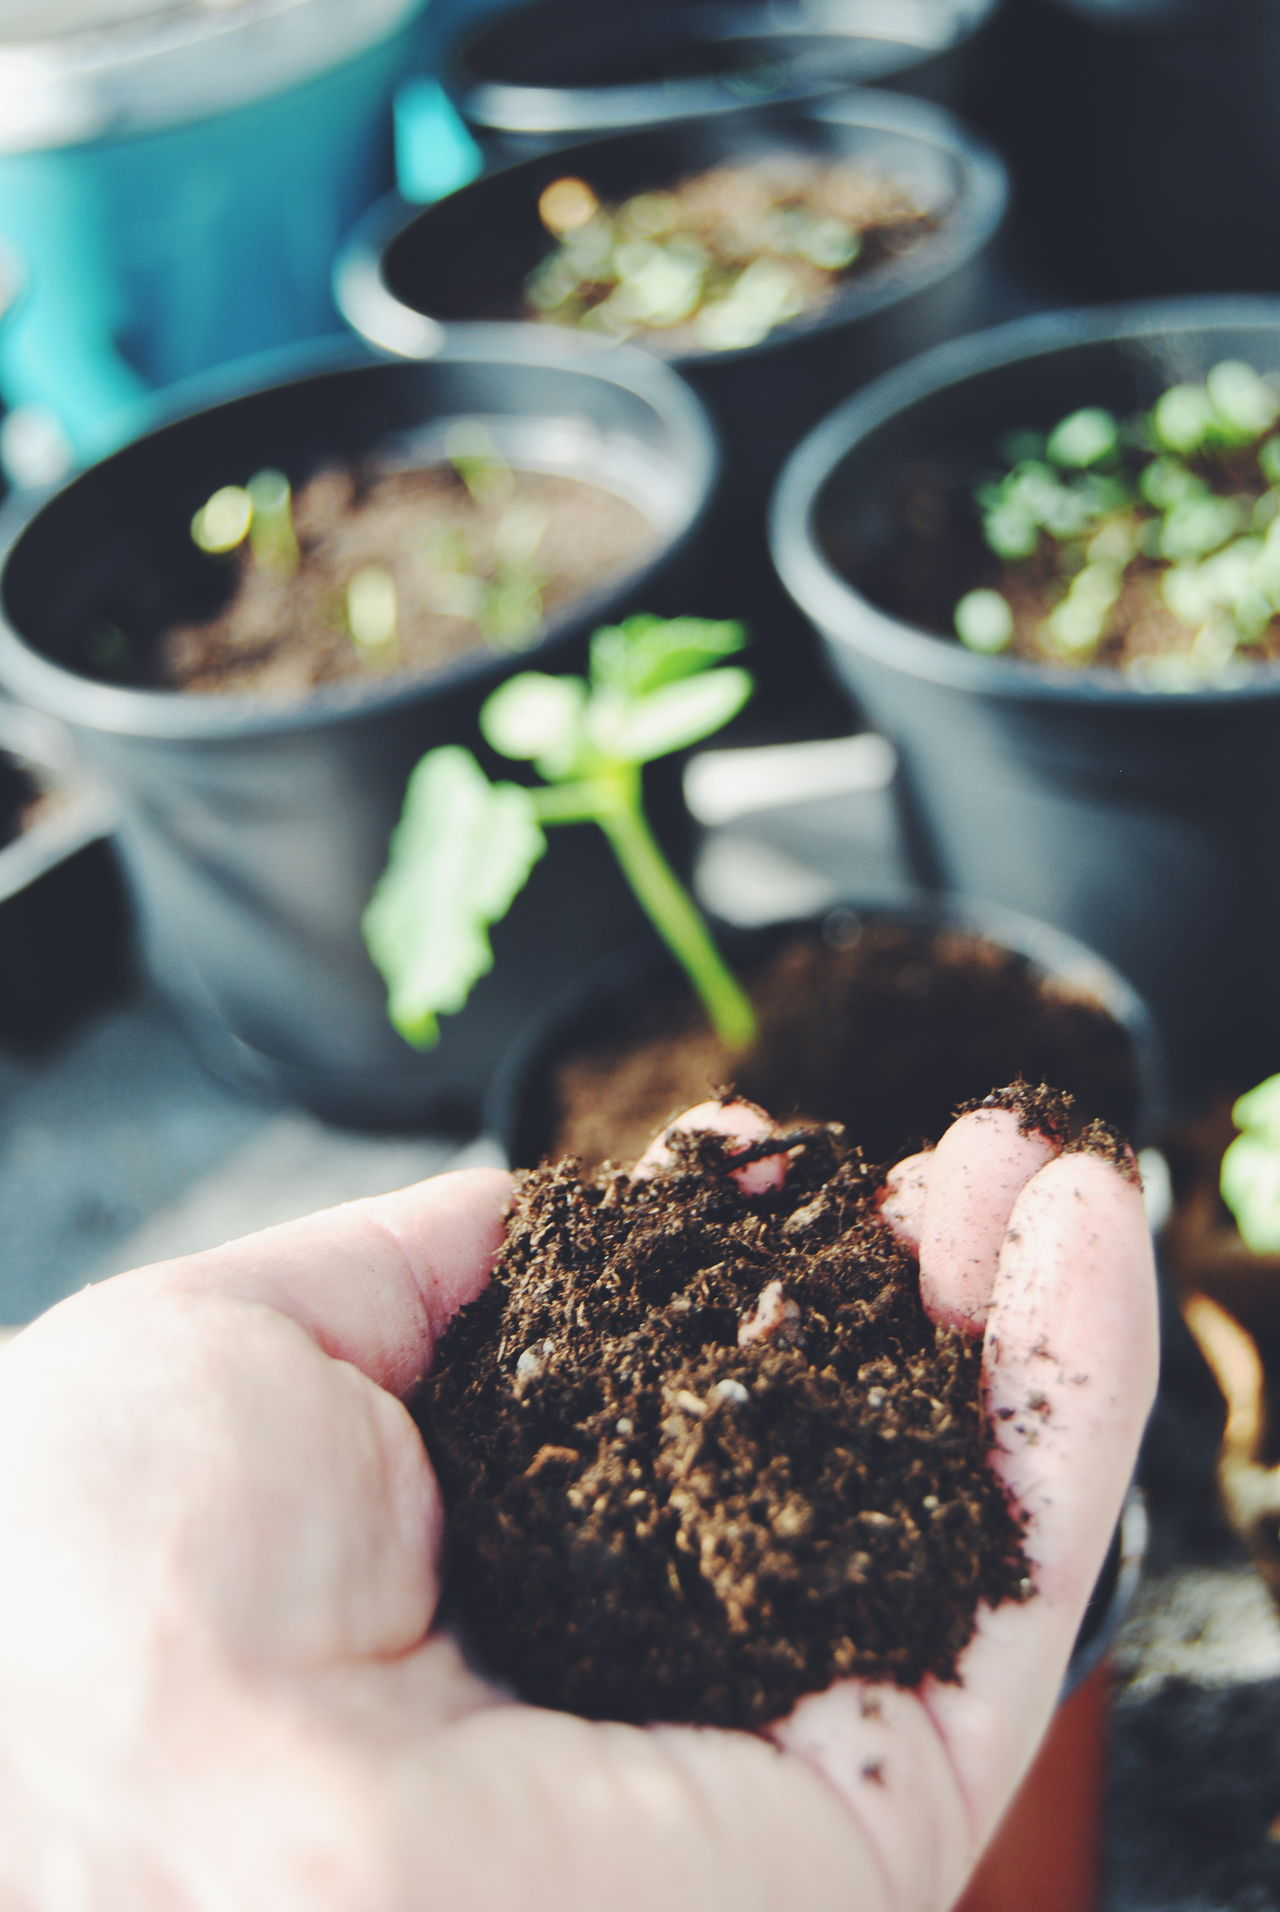 Beginning Close-up Directly Above Food Freshness Growth Healthy Eating Healthy Lifestyle High Angle View Indoors  Preparation  Spring Start Variation Beginnings Beginning Of Life  Beginning Of Spring Seeds Seed Of Life Soil Working Hands Greenhouse Planting Planting Seeds Hand